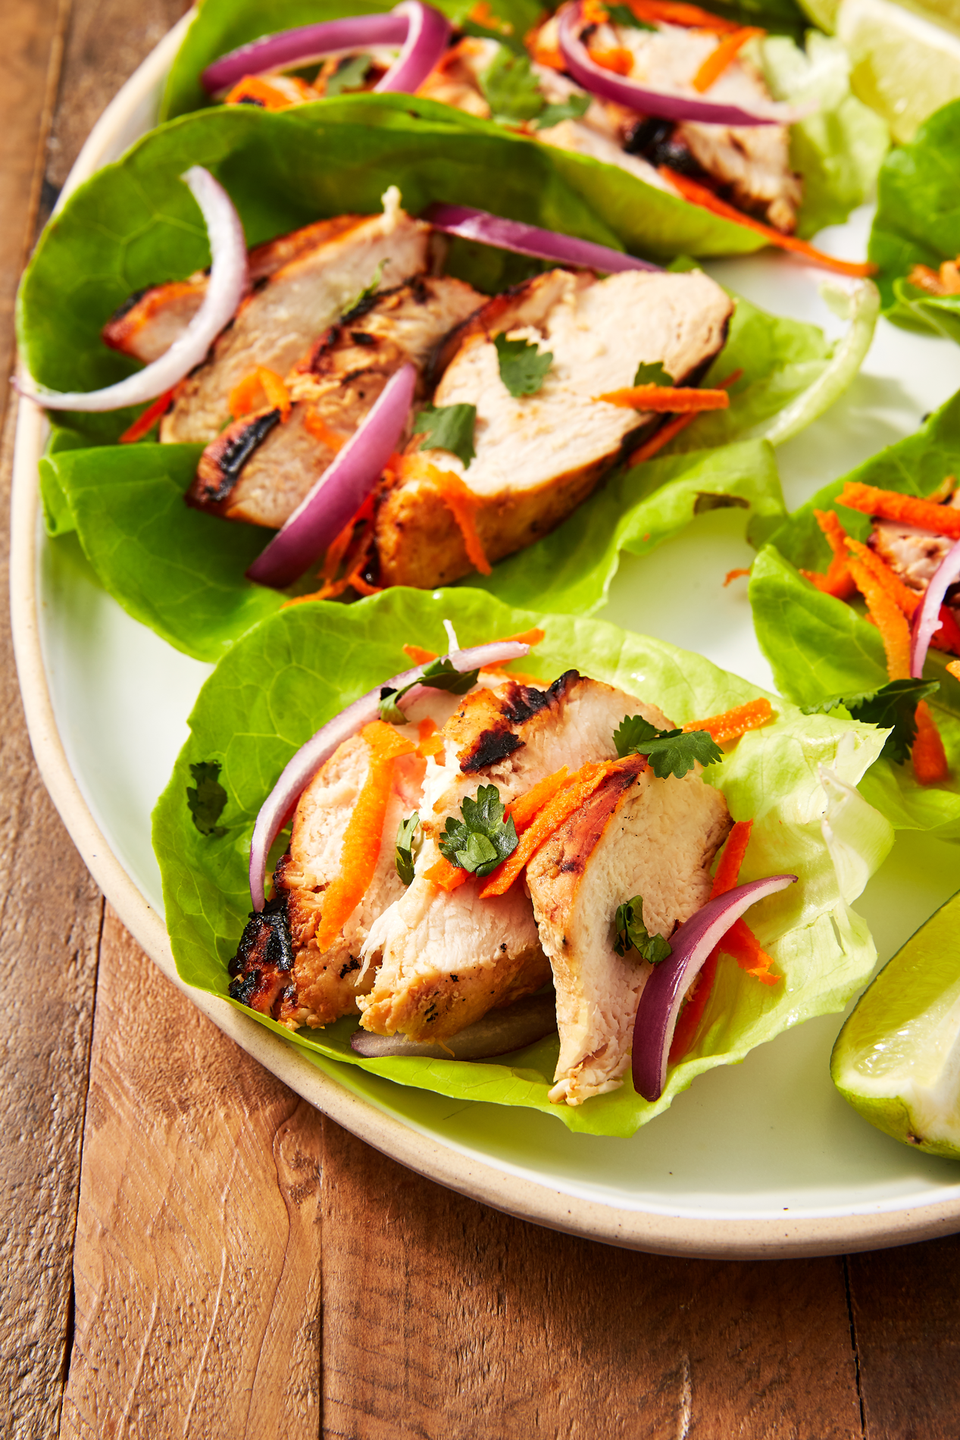 "<p>Eating healthy isn't so bad!</p><p>Get the recipe from <a href=""https://www.delish.com/cooking/recipe-ideas/recipes/a57645/thai-chicken-lettuce-cups-recipe/"" rel=""nofollow noopener"" target=""_blank"" data-ylk=""slk:Delish"" class=""link rapid-noclick-resp"">Delish</a>. </p>"